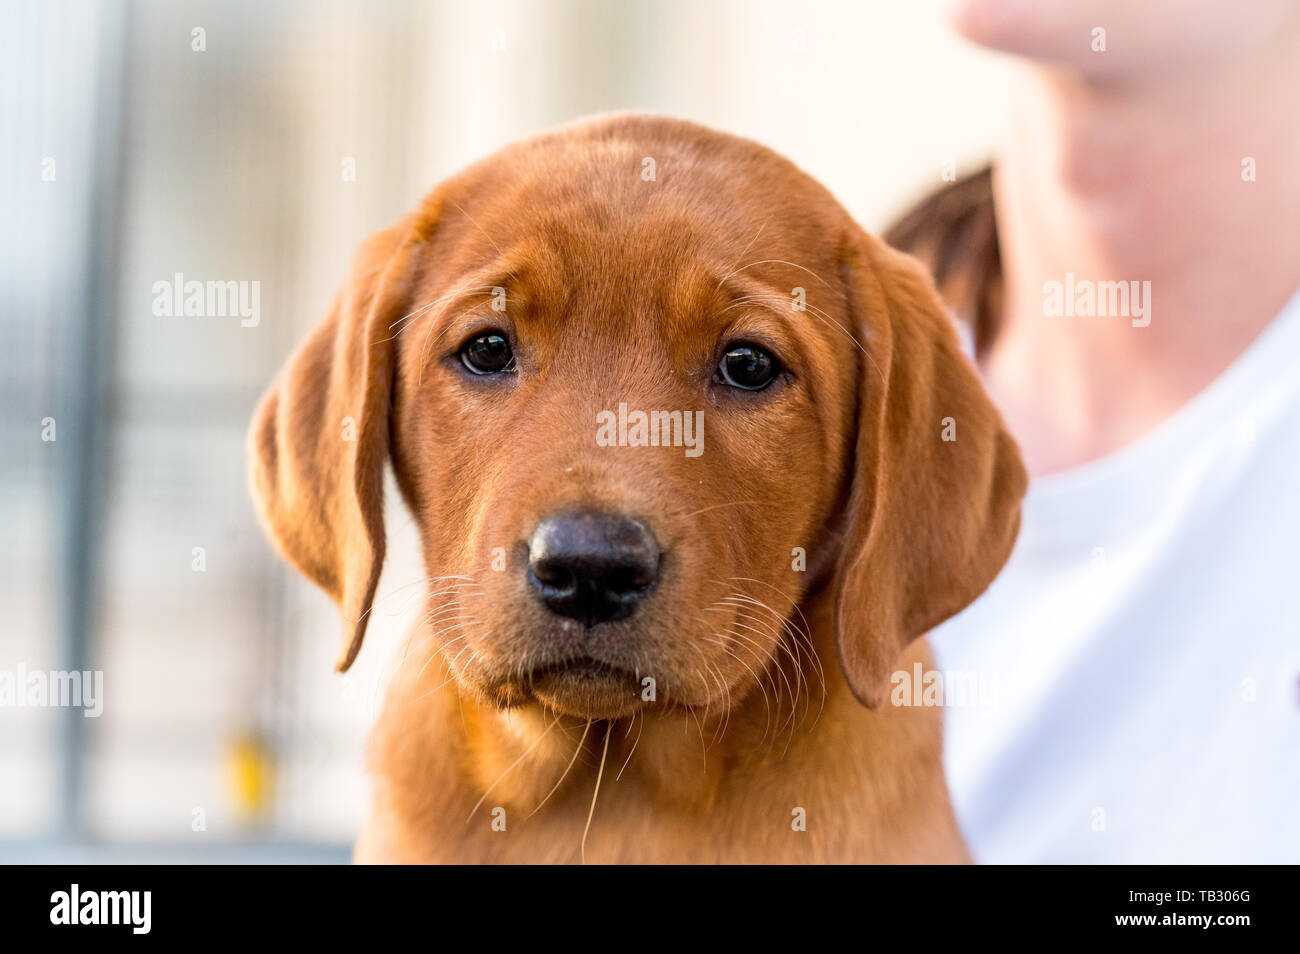 Cute Light Brown Labrador Retriever Puppy Stock Photo Alamy